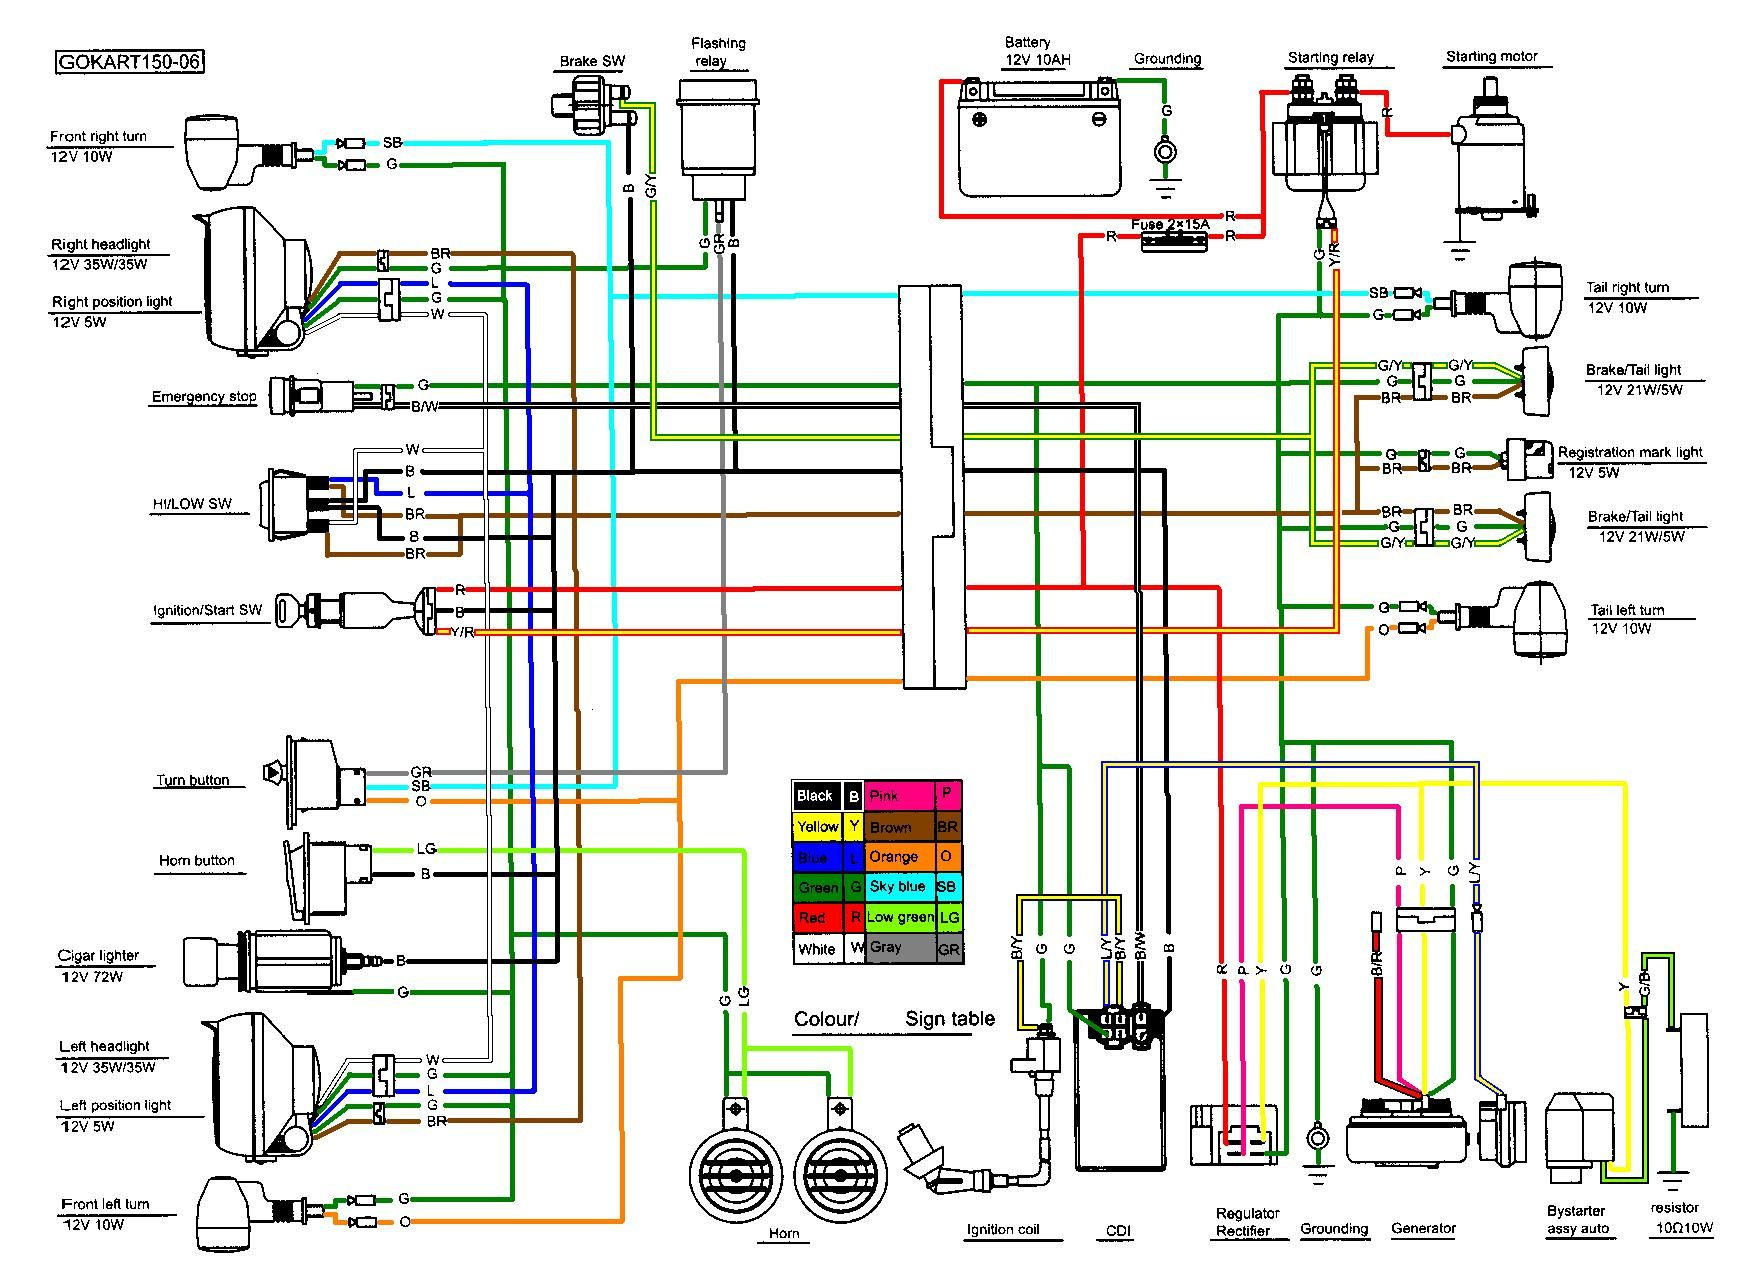 Wiring Diagram Gy6 Schematic Download GY6 Ignition